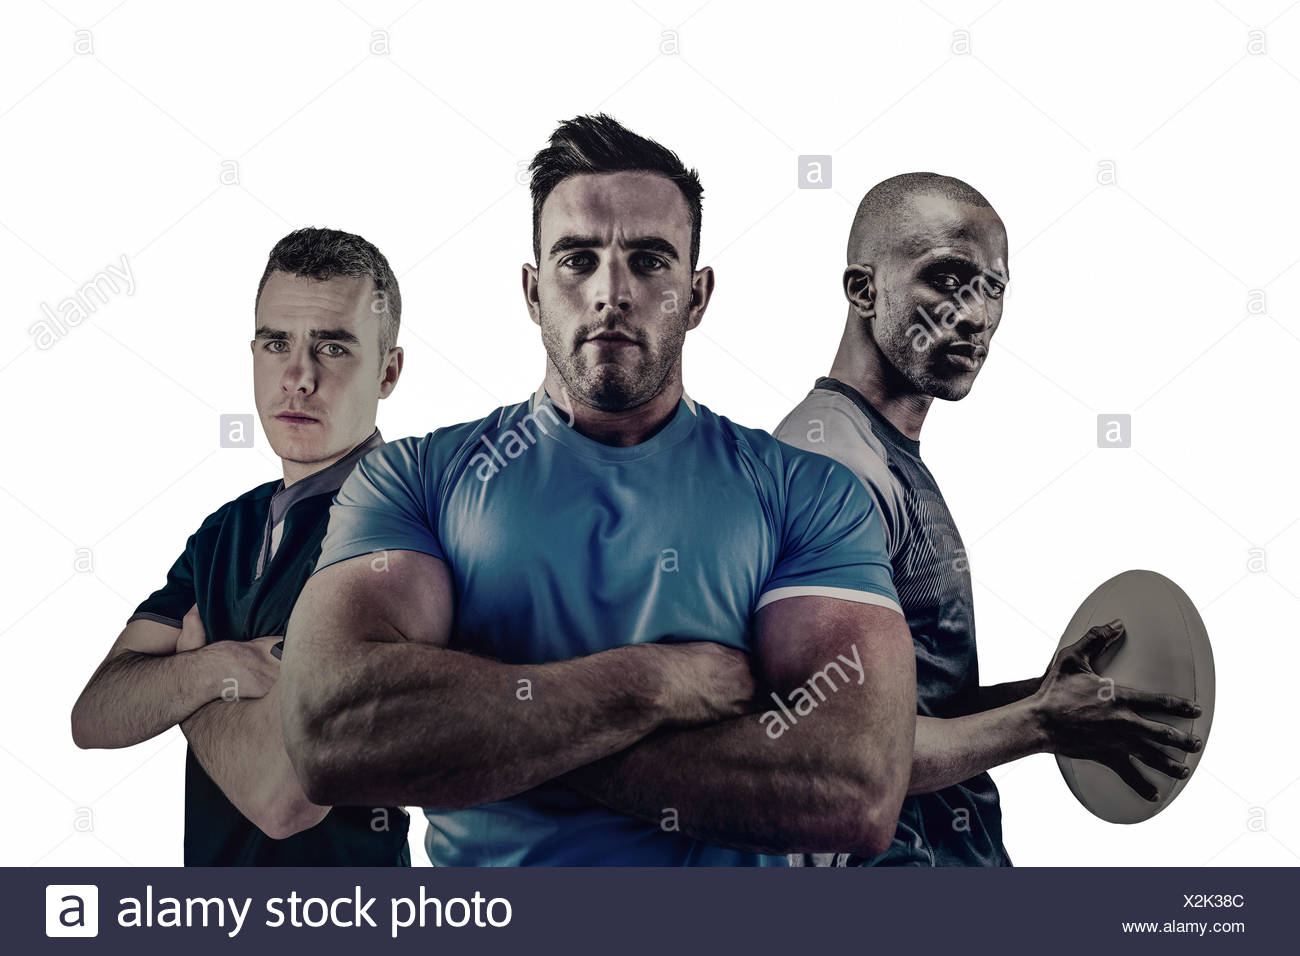 Group of Tough rugby players - Stock Image